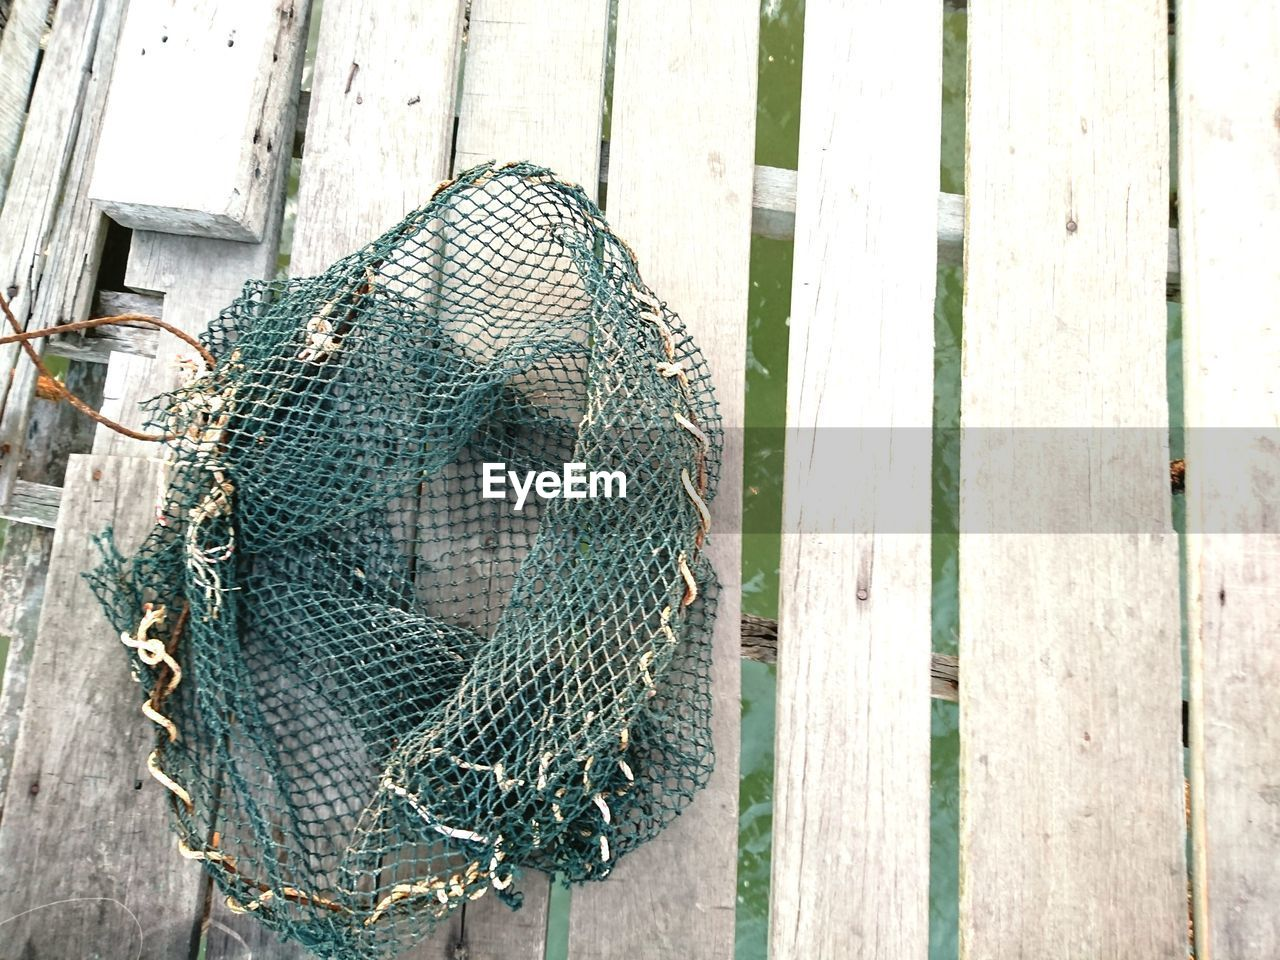 no people, day, fishing industry, fishing net, fishing, close-up, rope, wood - material, metal, commercial fishing net, outdoors, safety, security, wall - building feature, cage, high angle view, boundary, animal themes, pattern, animal